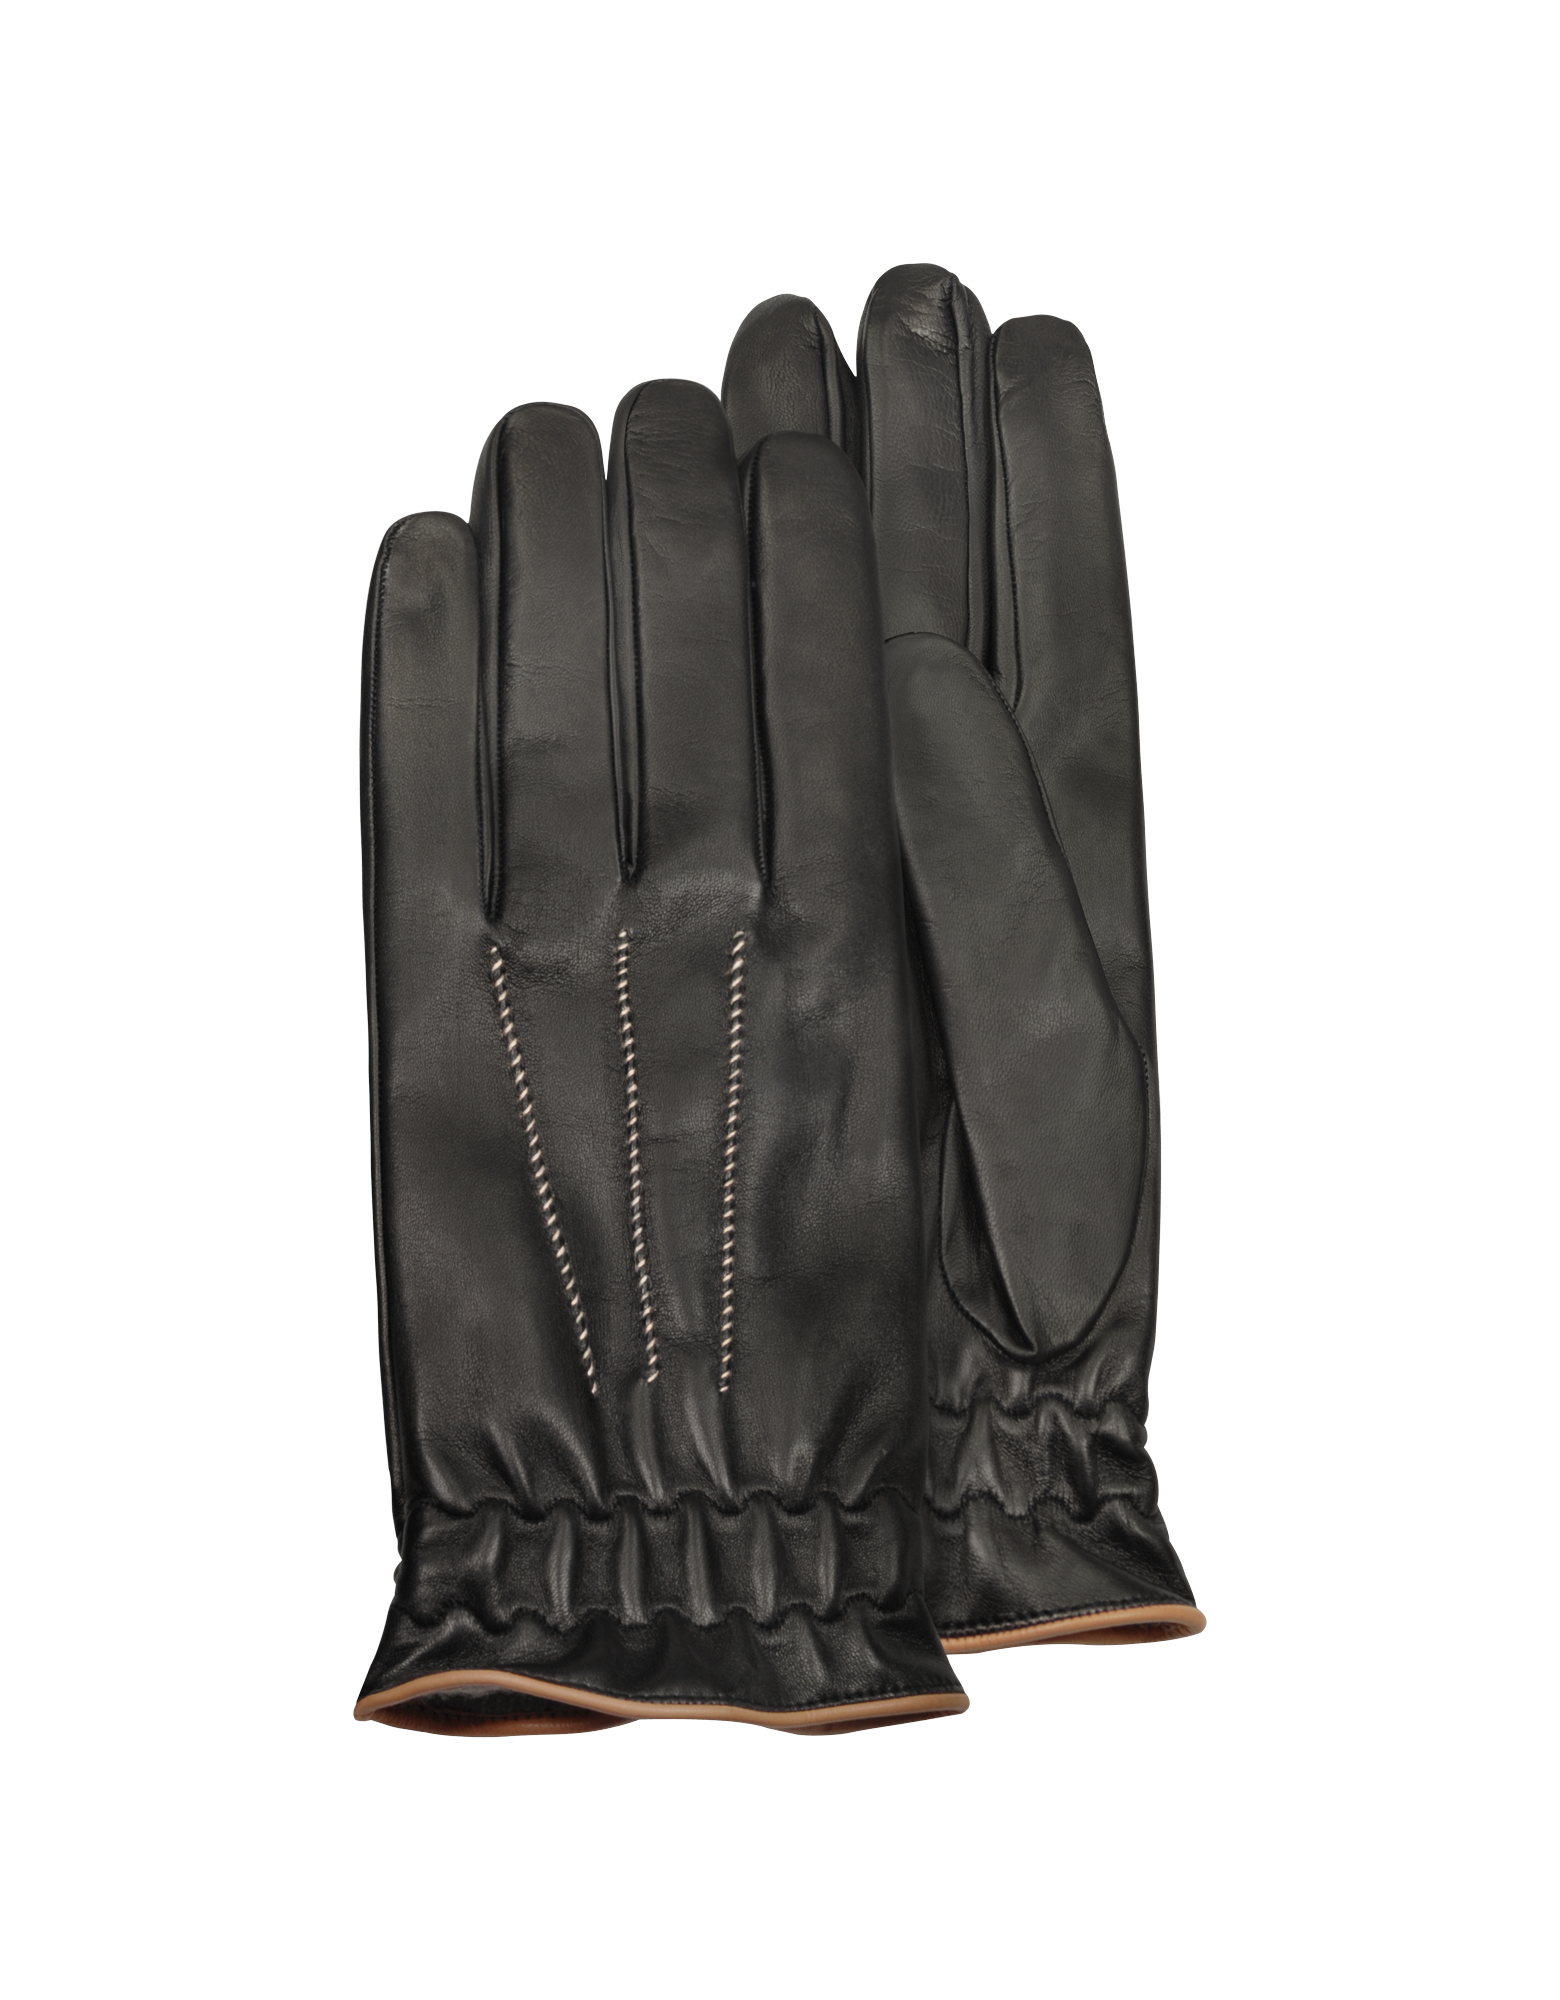 Image of Men's Black Cashmere Lined Calf Leather Gloves